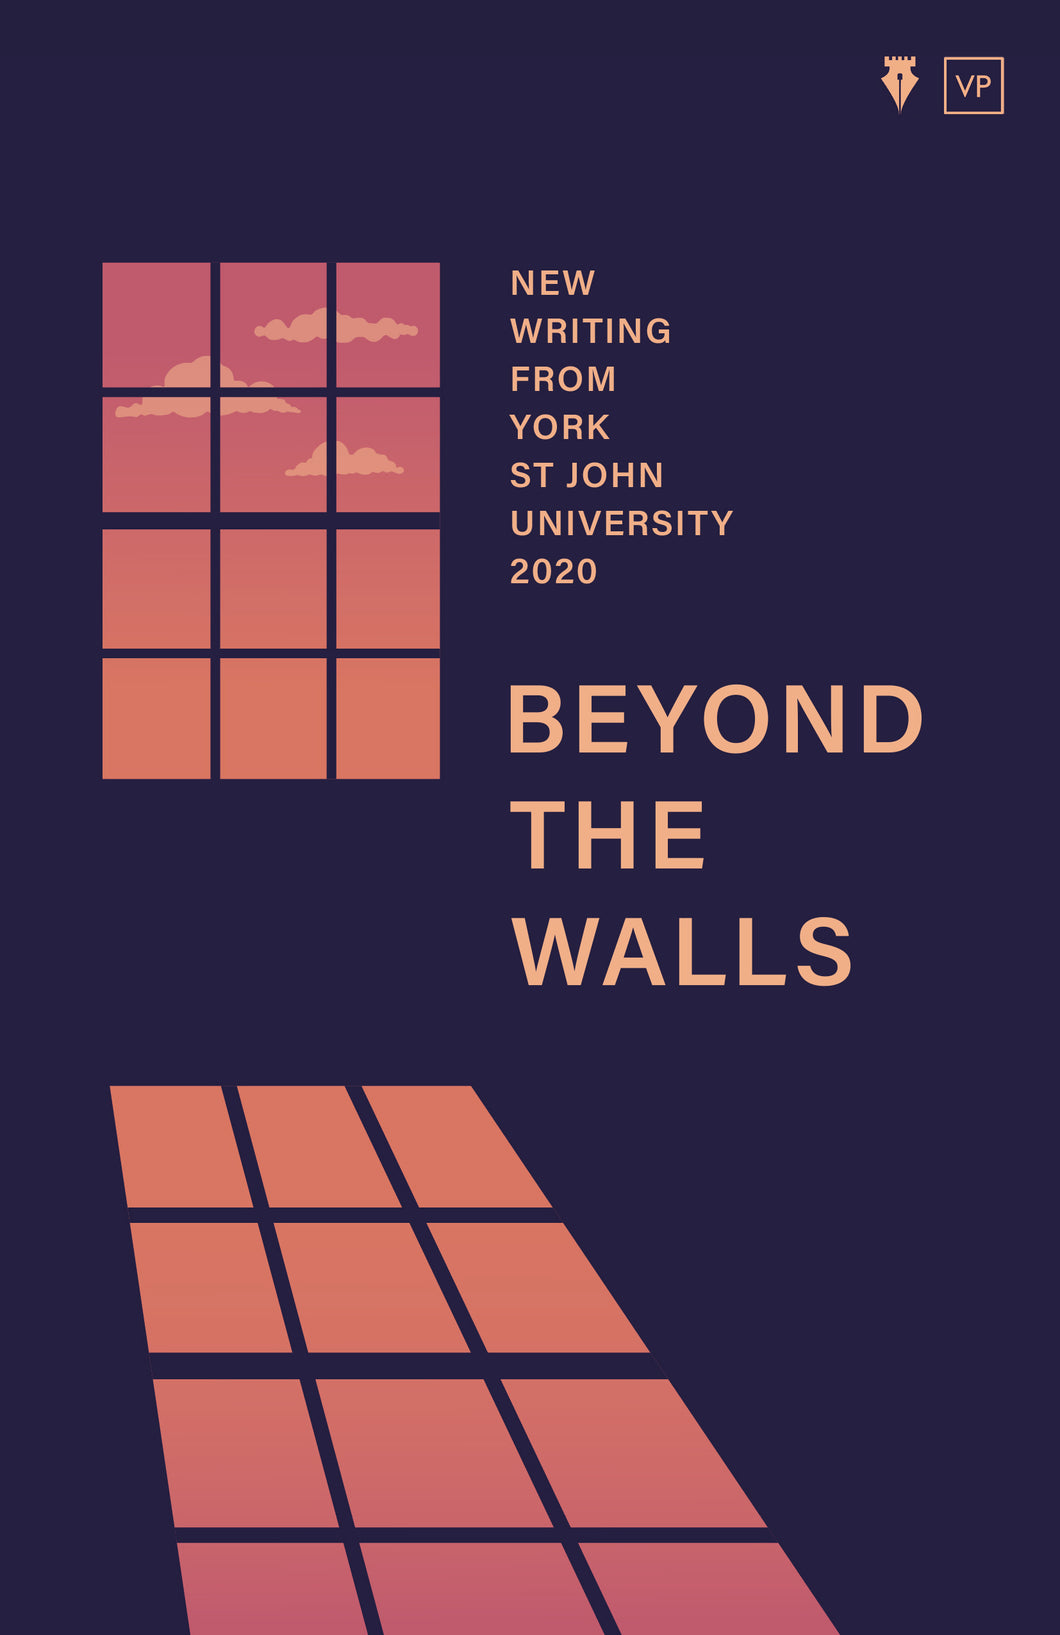 Beyond the Walls 2020